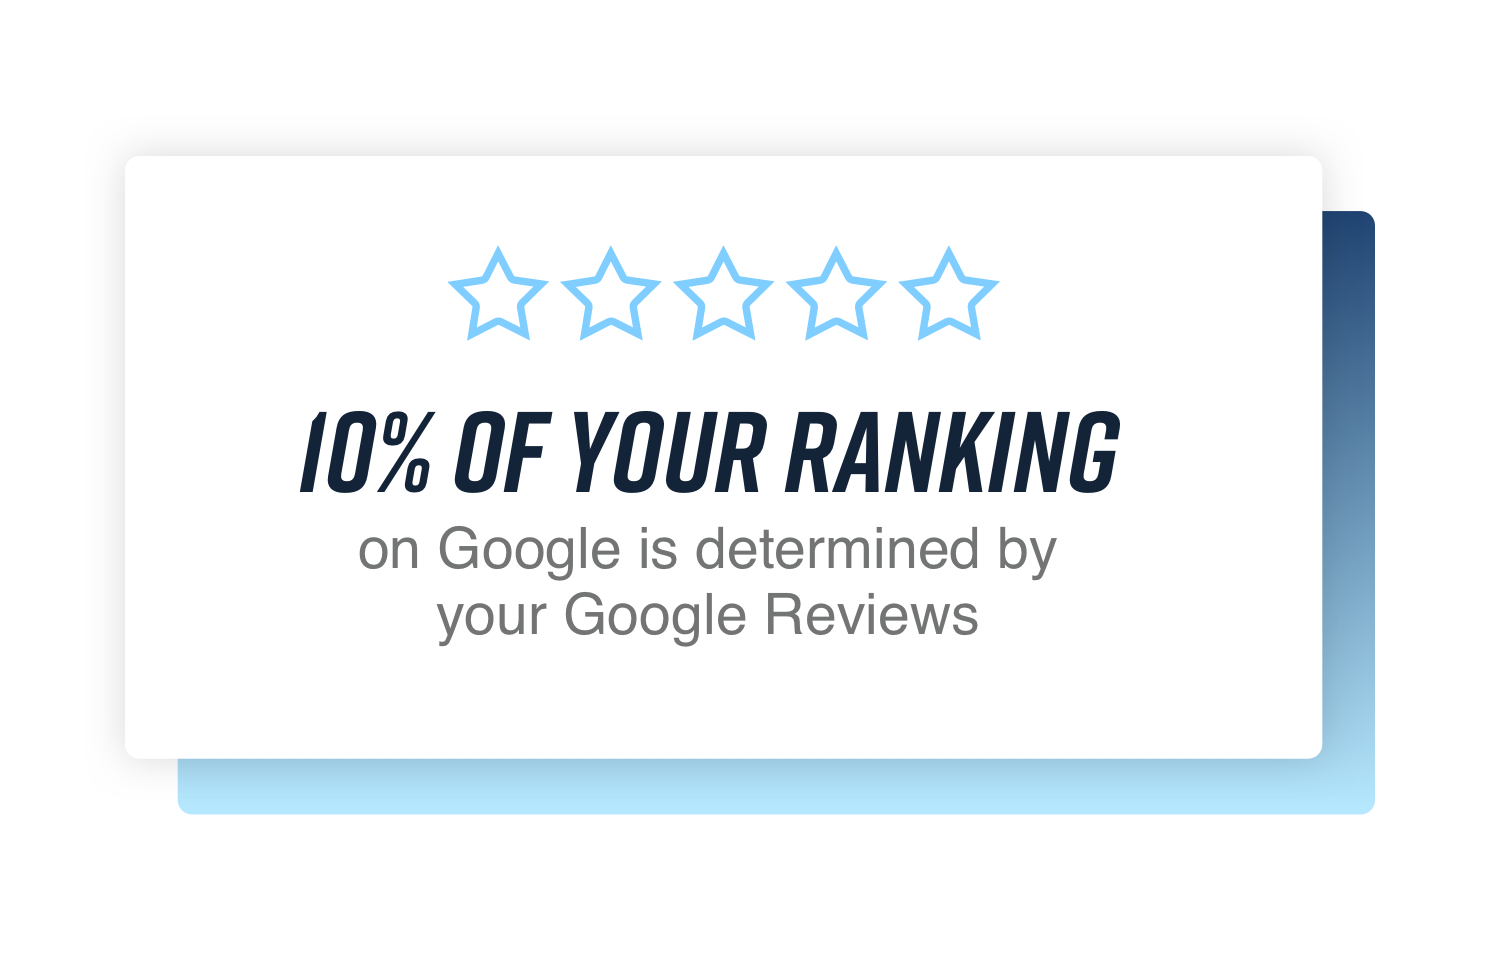 Show Up First. - Improving your Google review star rating, quality of reviews, and velocity of reviews is one of the easiest ways to rank higher on Google. When your shop is on top new leads will pick you first.